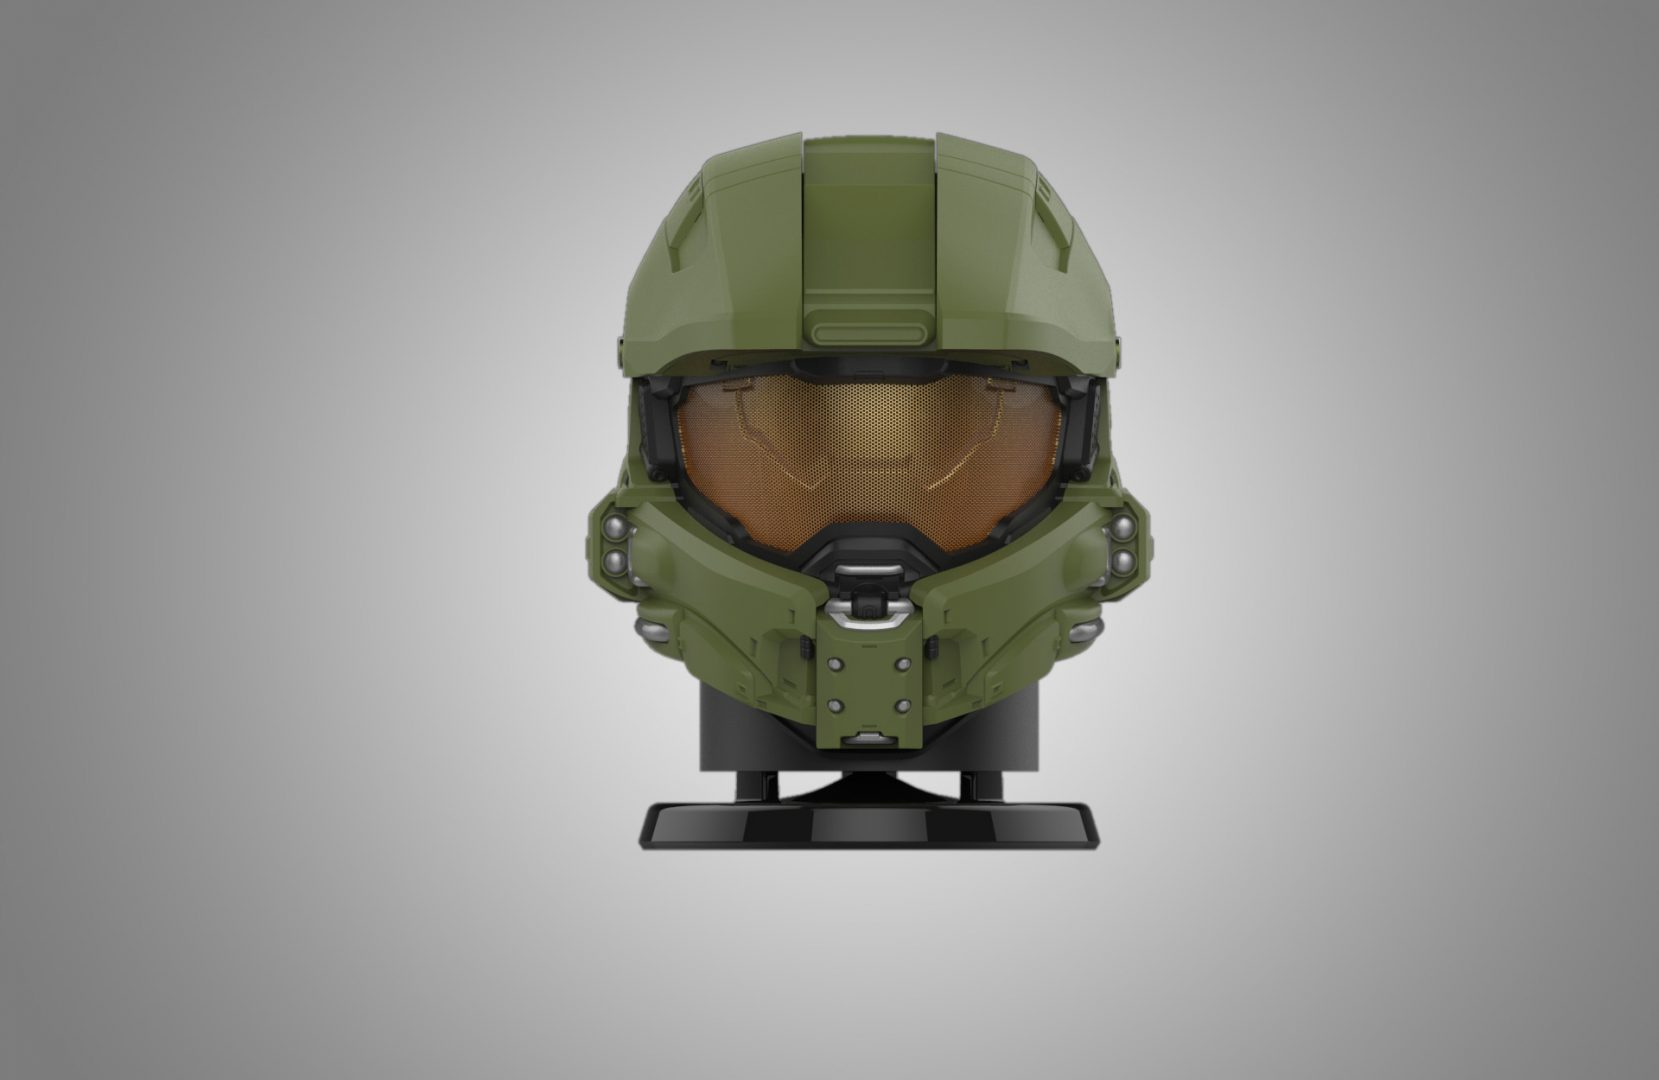 Ramp it up, Spartan, With These New Halo Bluetooth Speakers